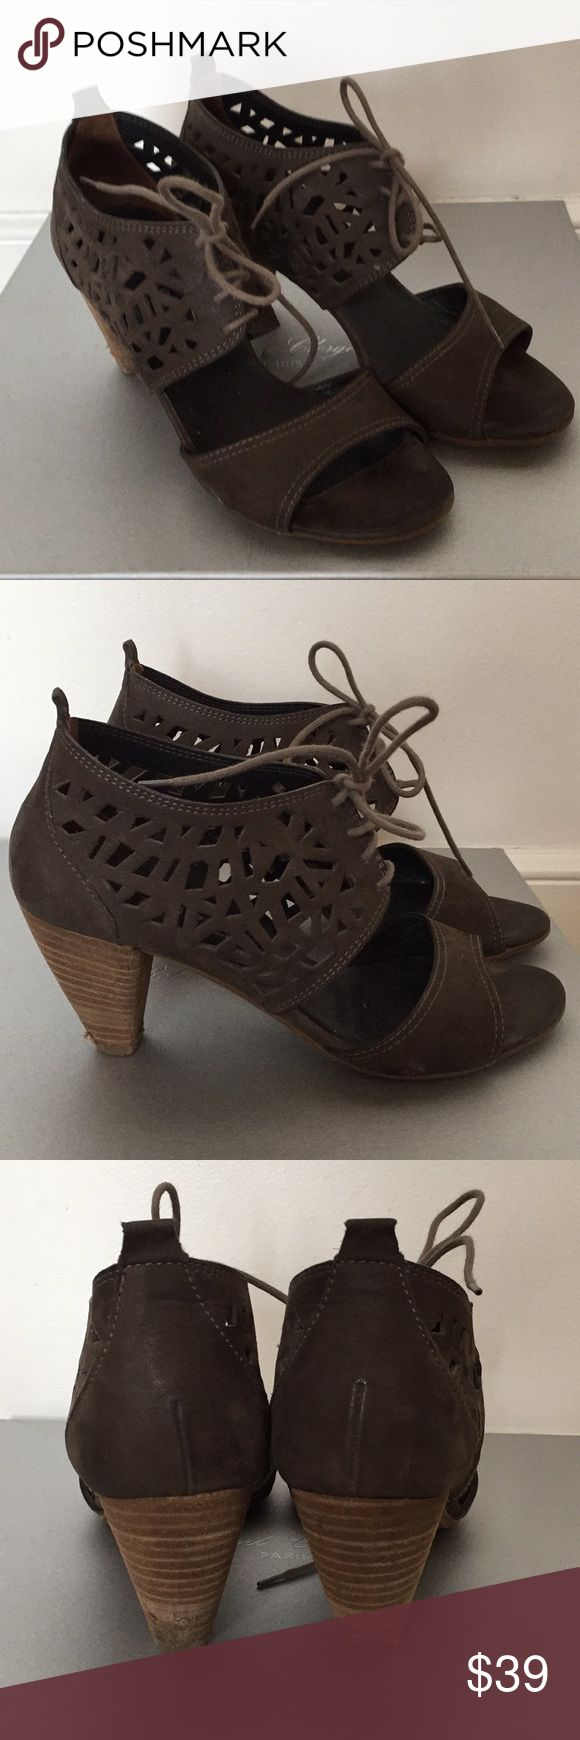 """Paul Green nubuck sandals Super stable punched leather. Lace up suede sandal. Great for in between seasons. Stacked 2"""" heel Paul Green Shoes Sandals"""